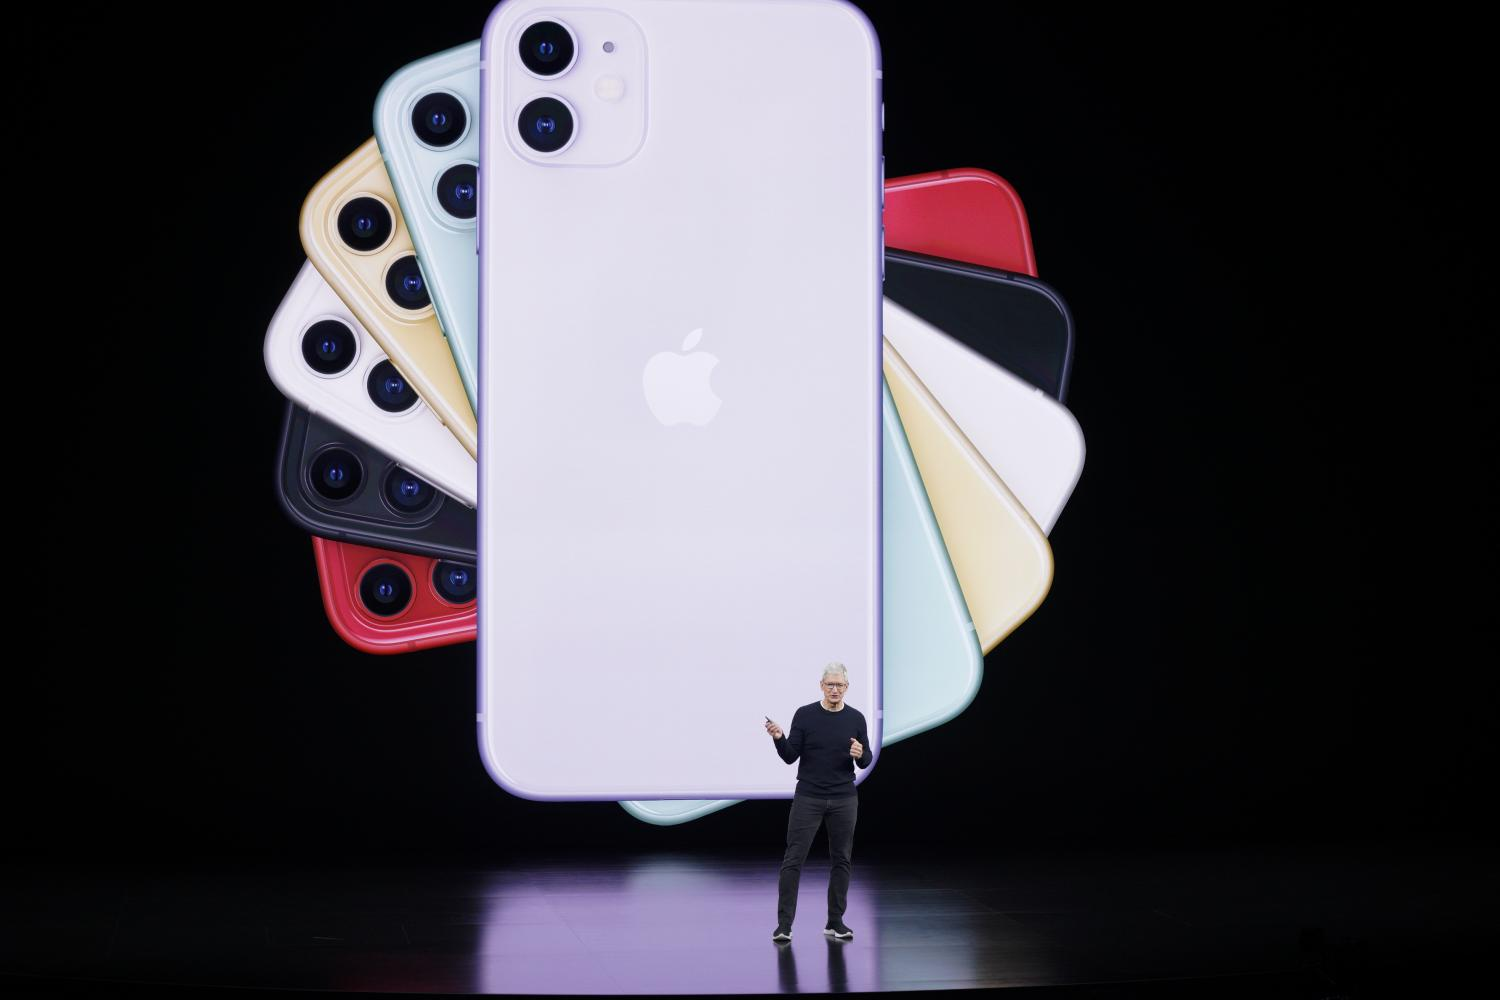 Chief executive Tim Cook unveiled the latest iPhone at Apple's headquarters in Cupertino, California on Tuesday. (AP photo)